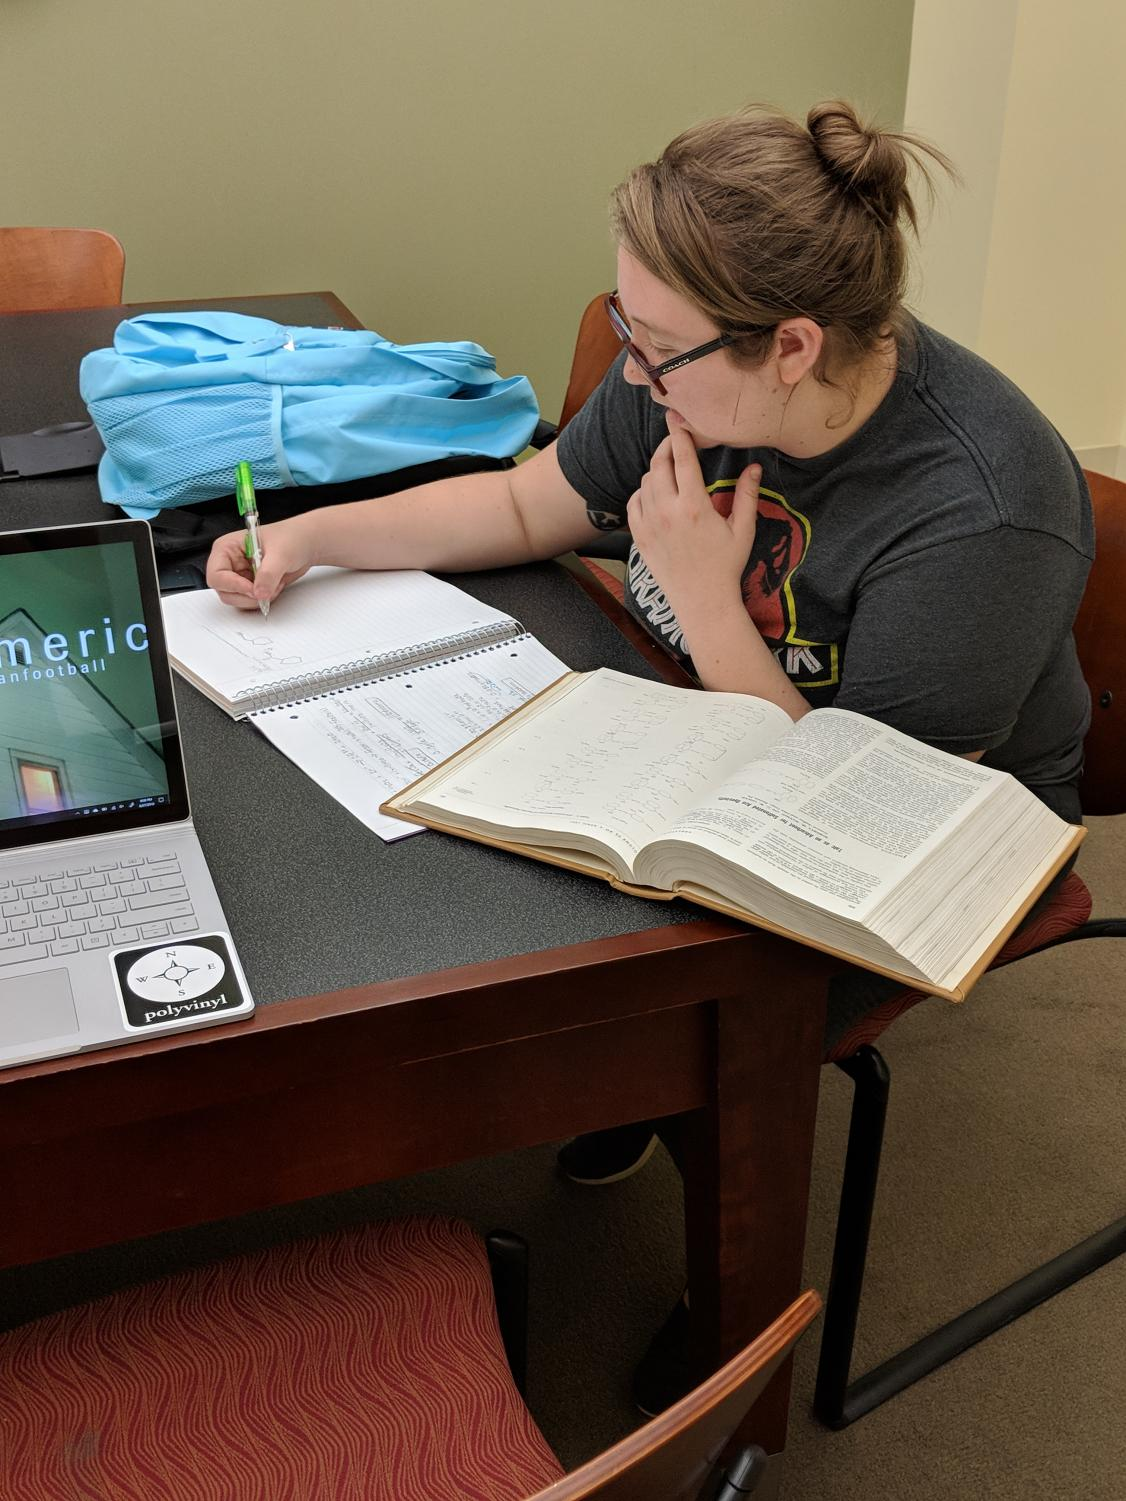 Katie McKoy, General Studies Major and junior, completes an online assignment. Photo by Bryce Shreve